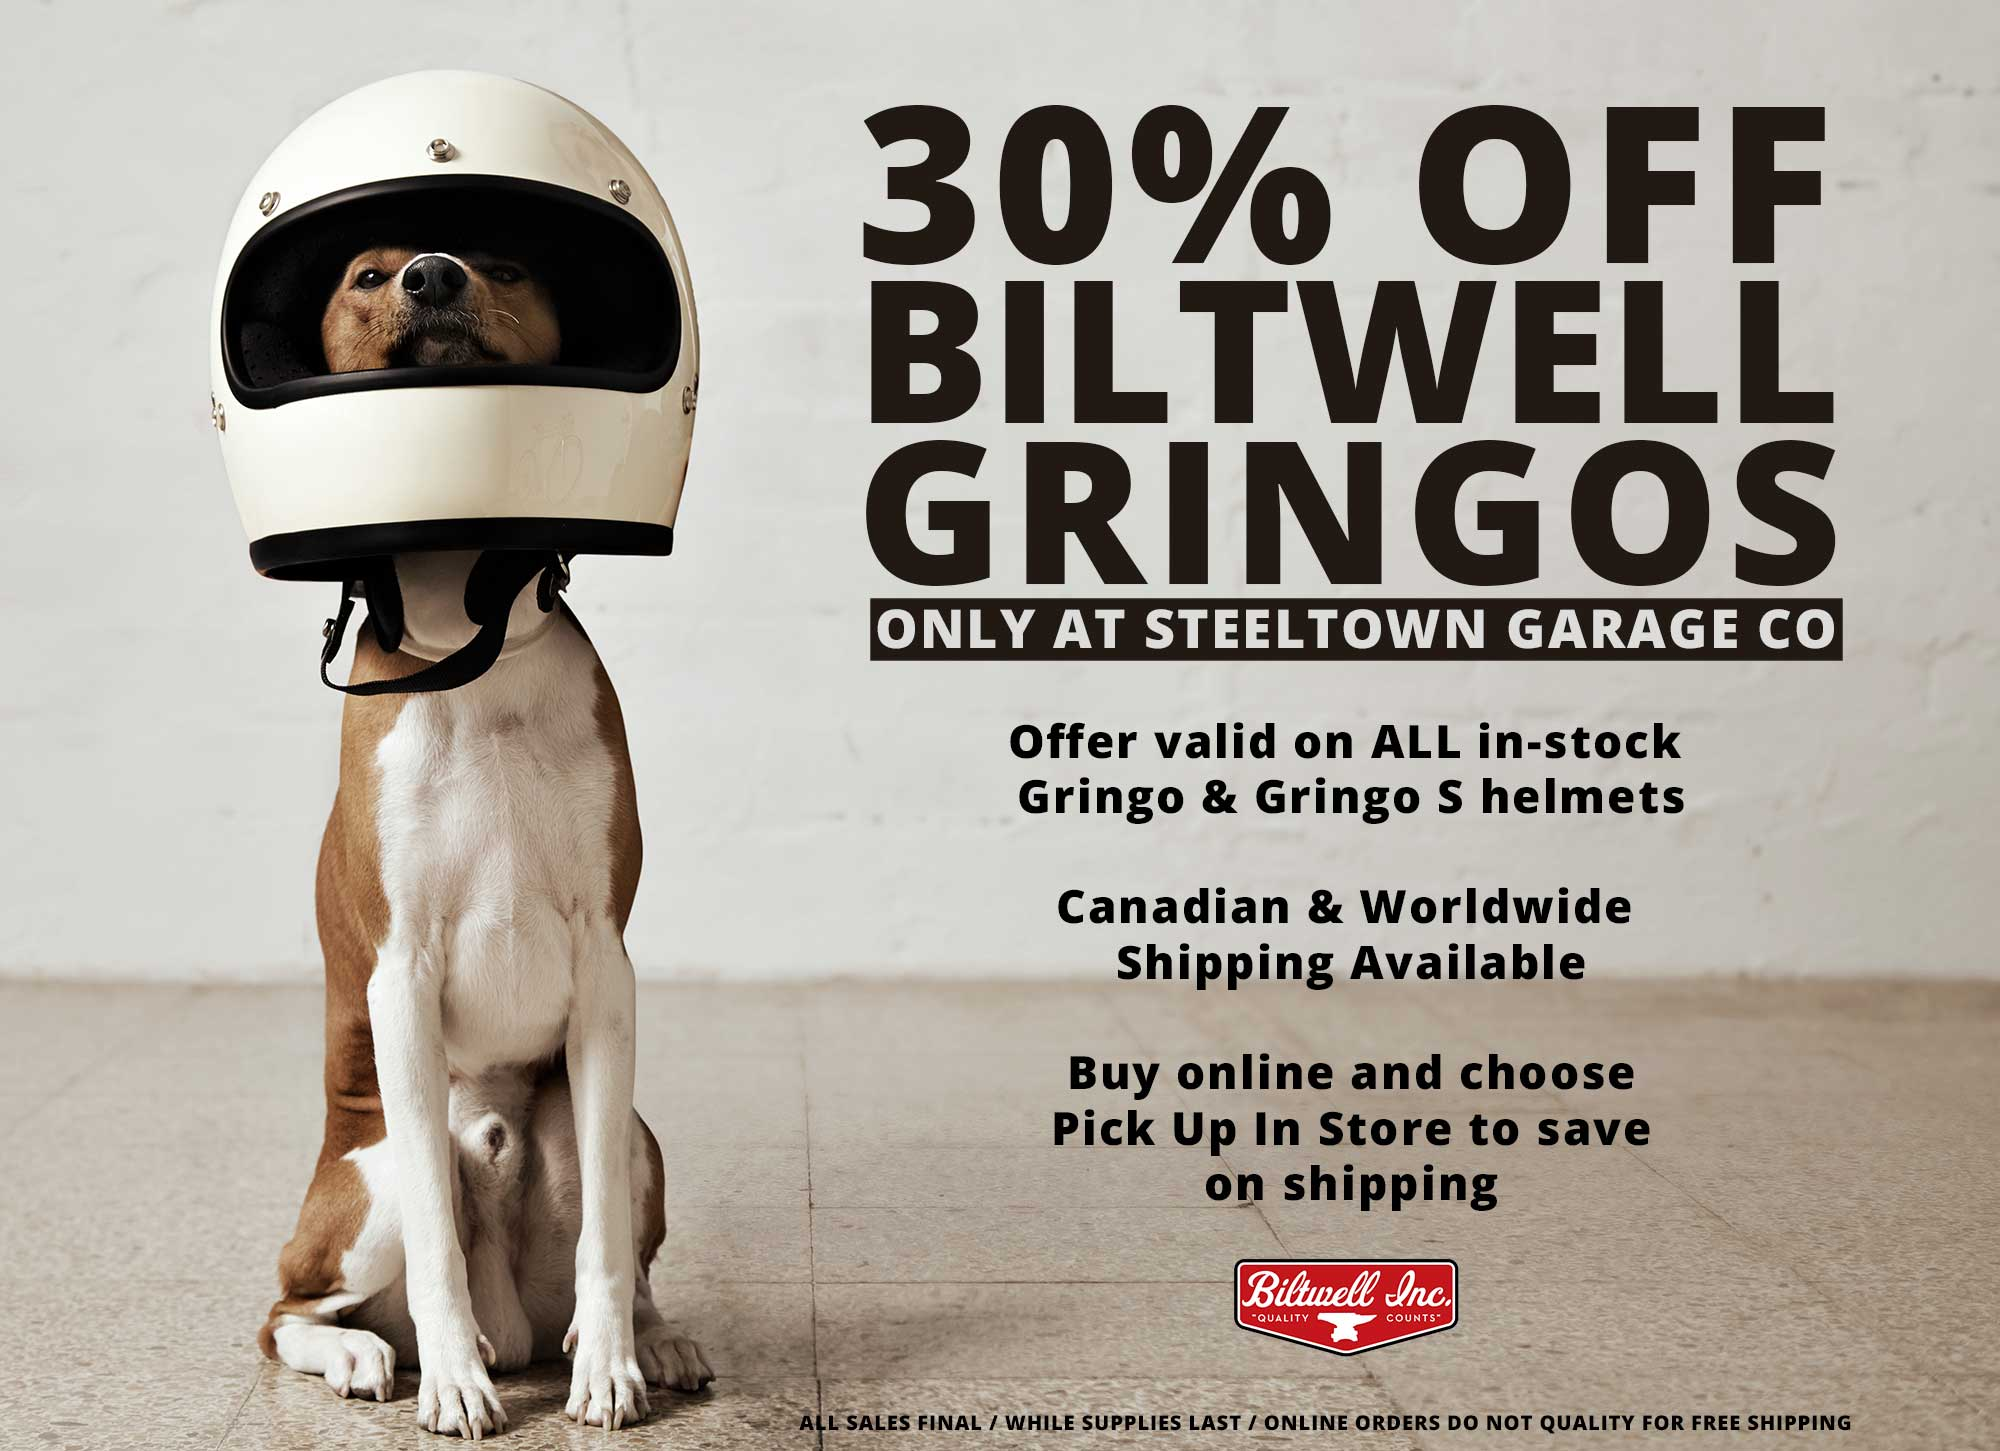 Gringo biltwell helmet sale steeltown garage co